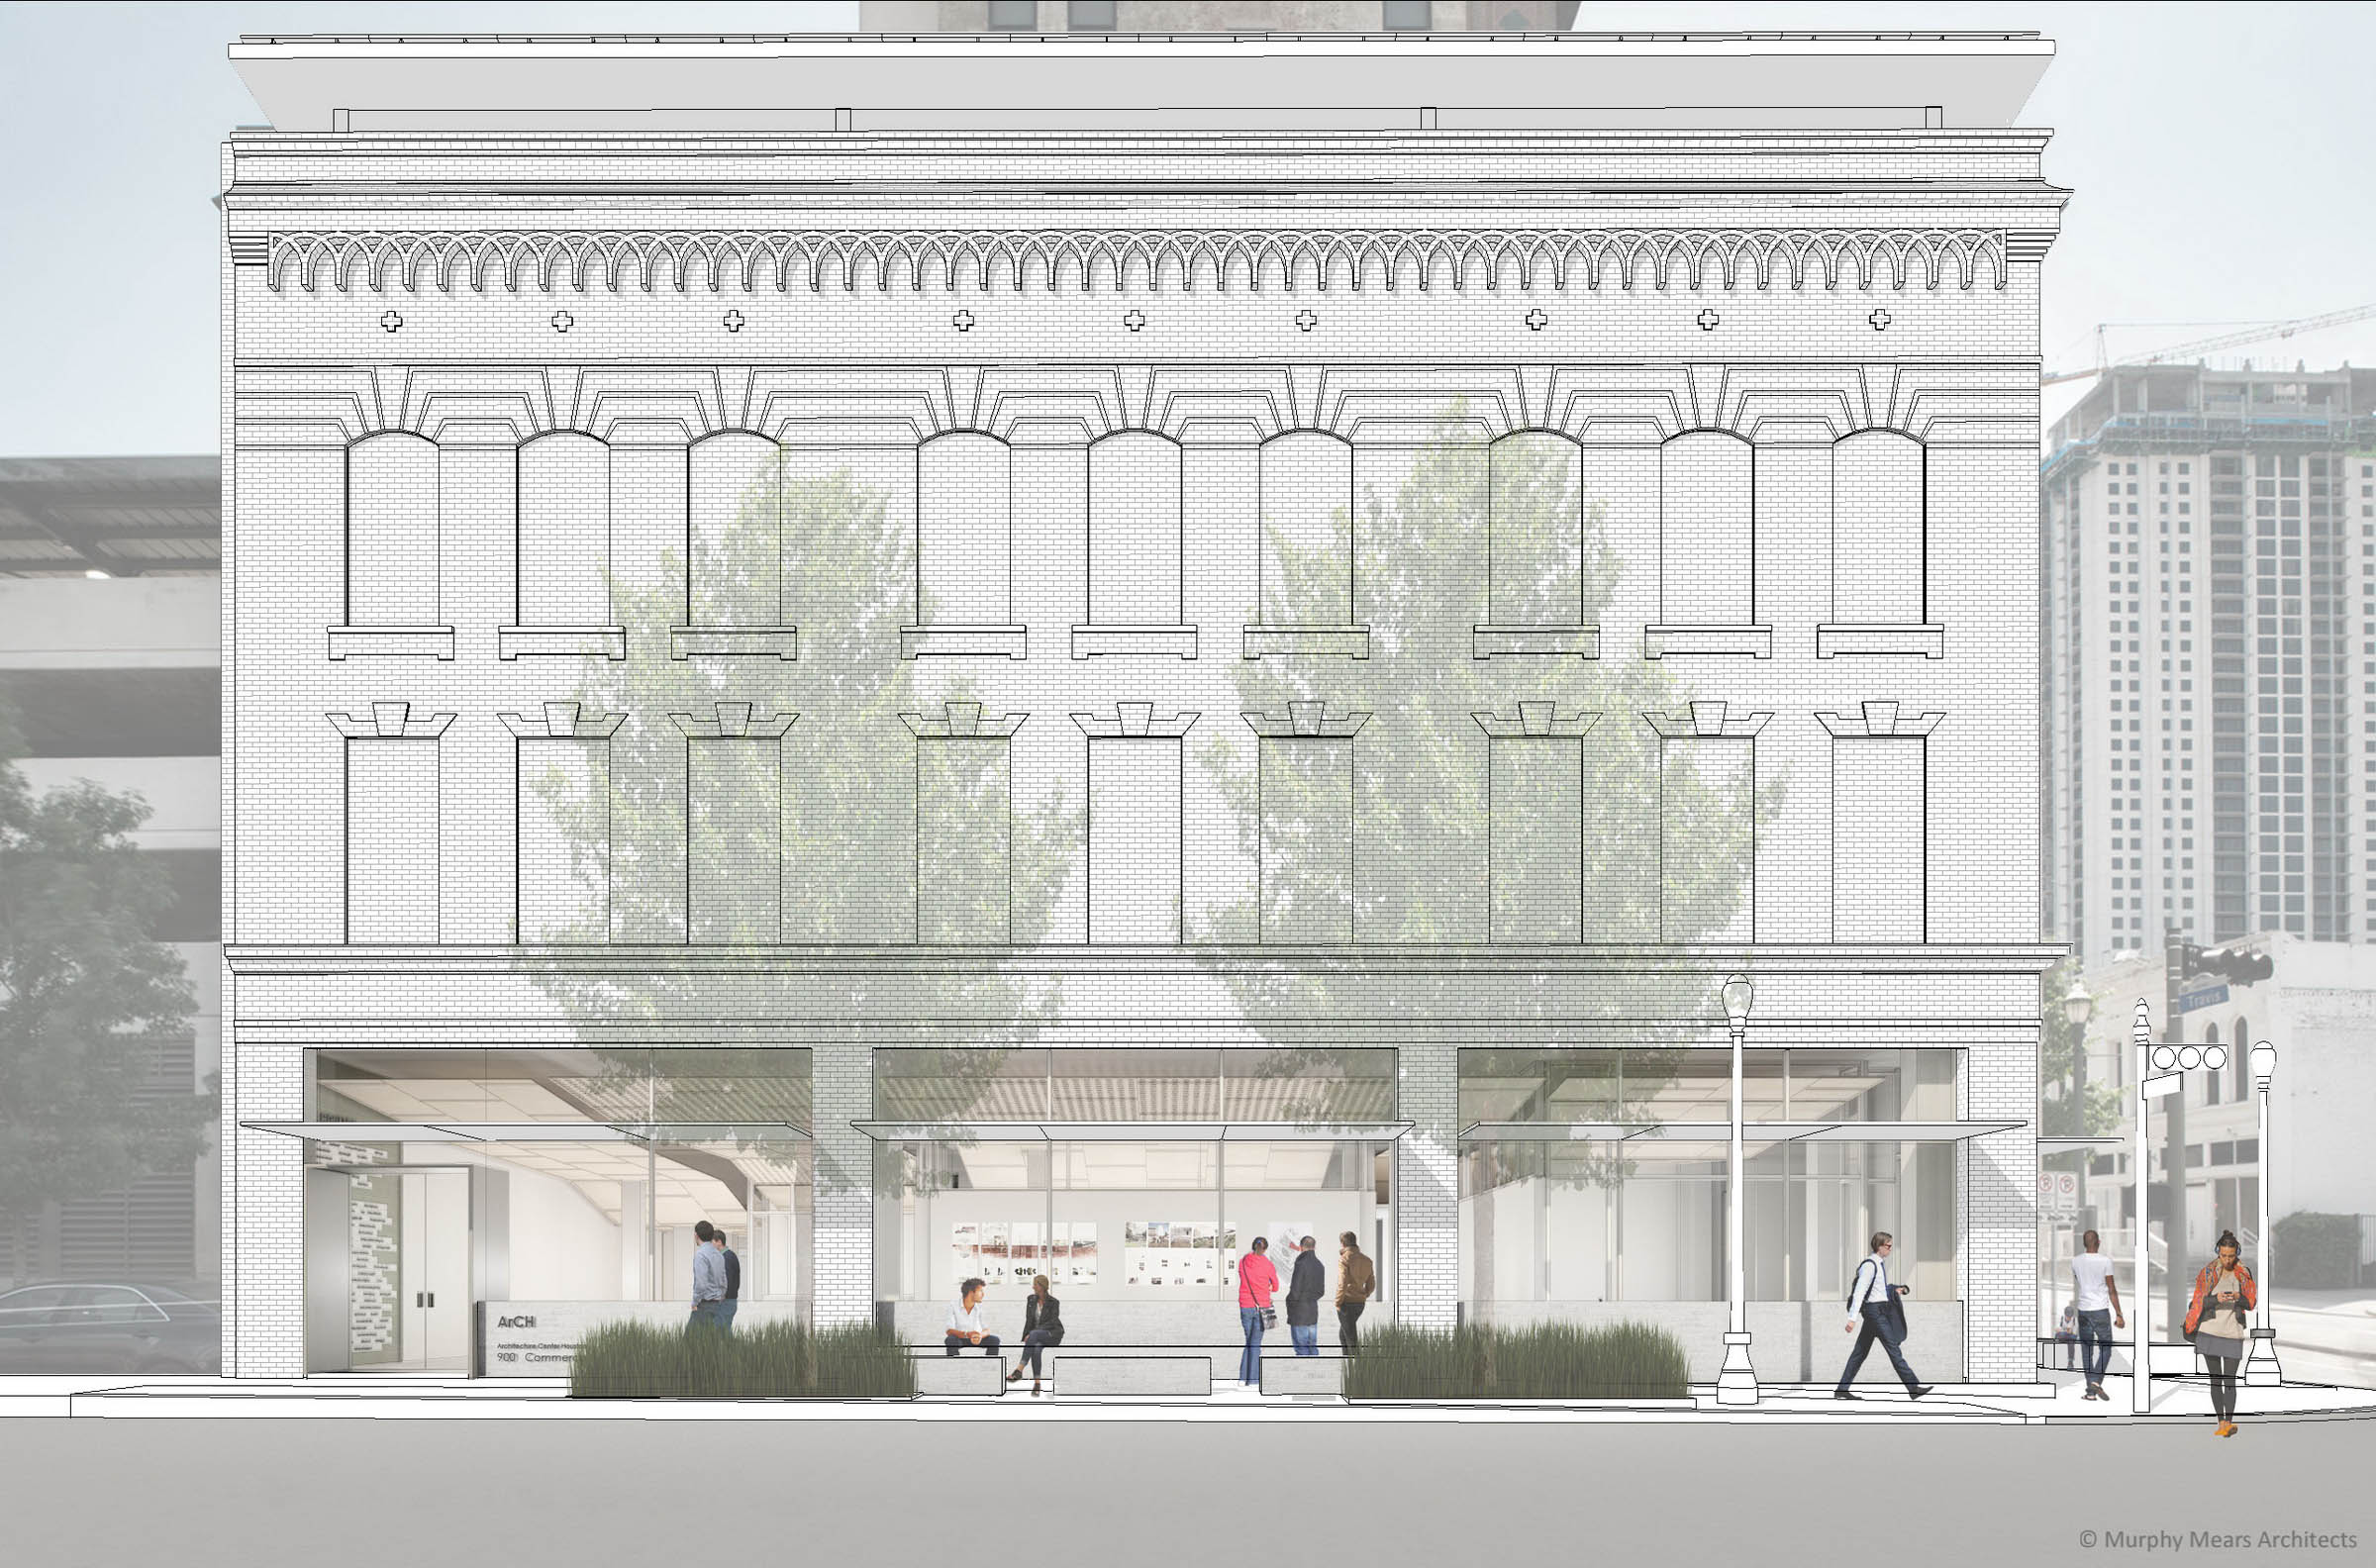 Architecture Center Houston - Competition Entry North Facade Rendering.